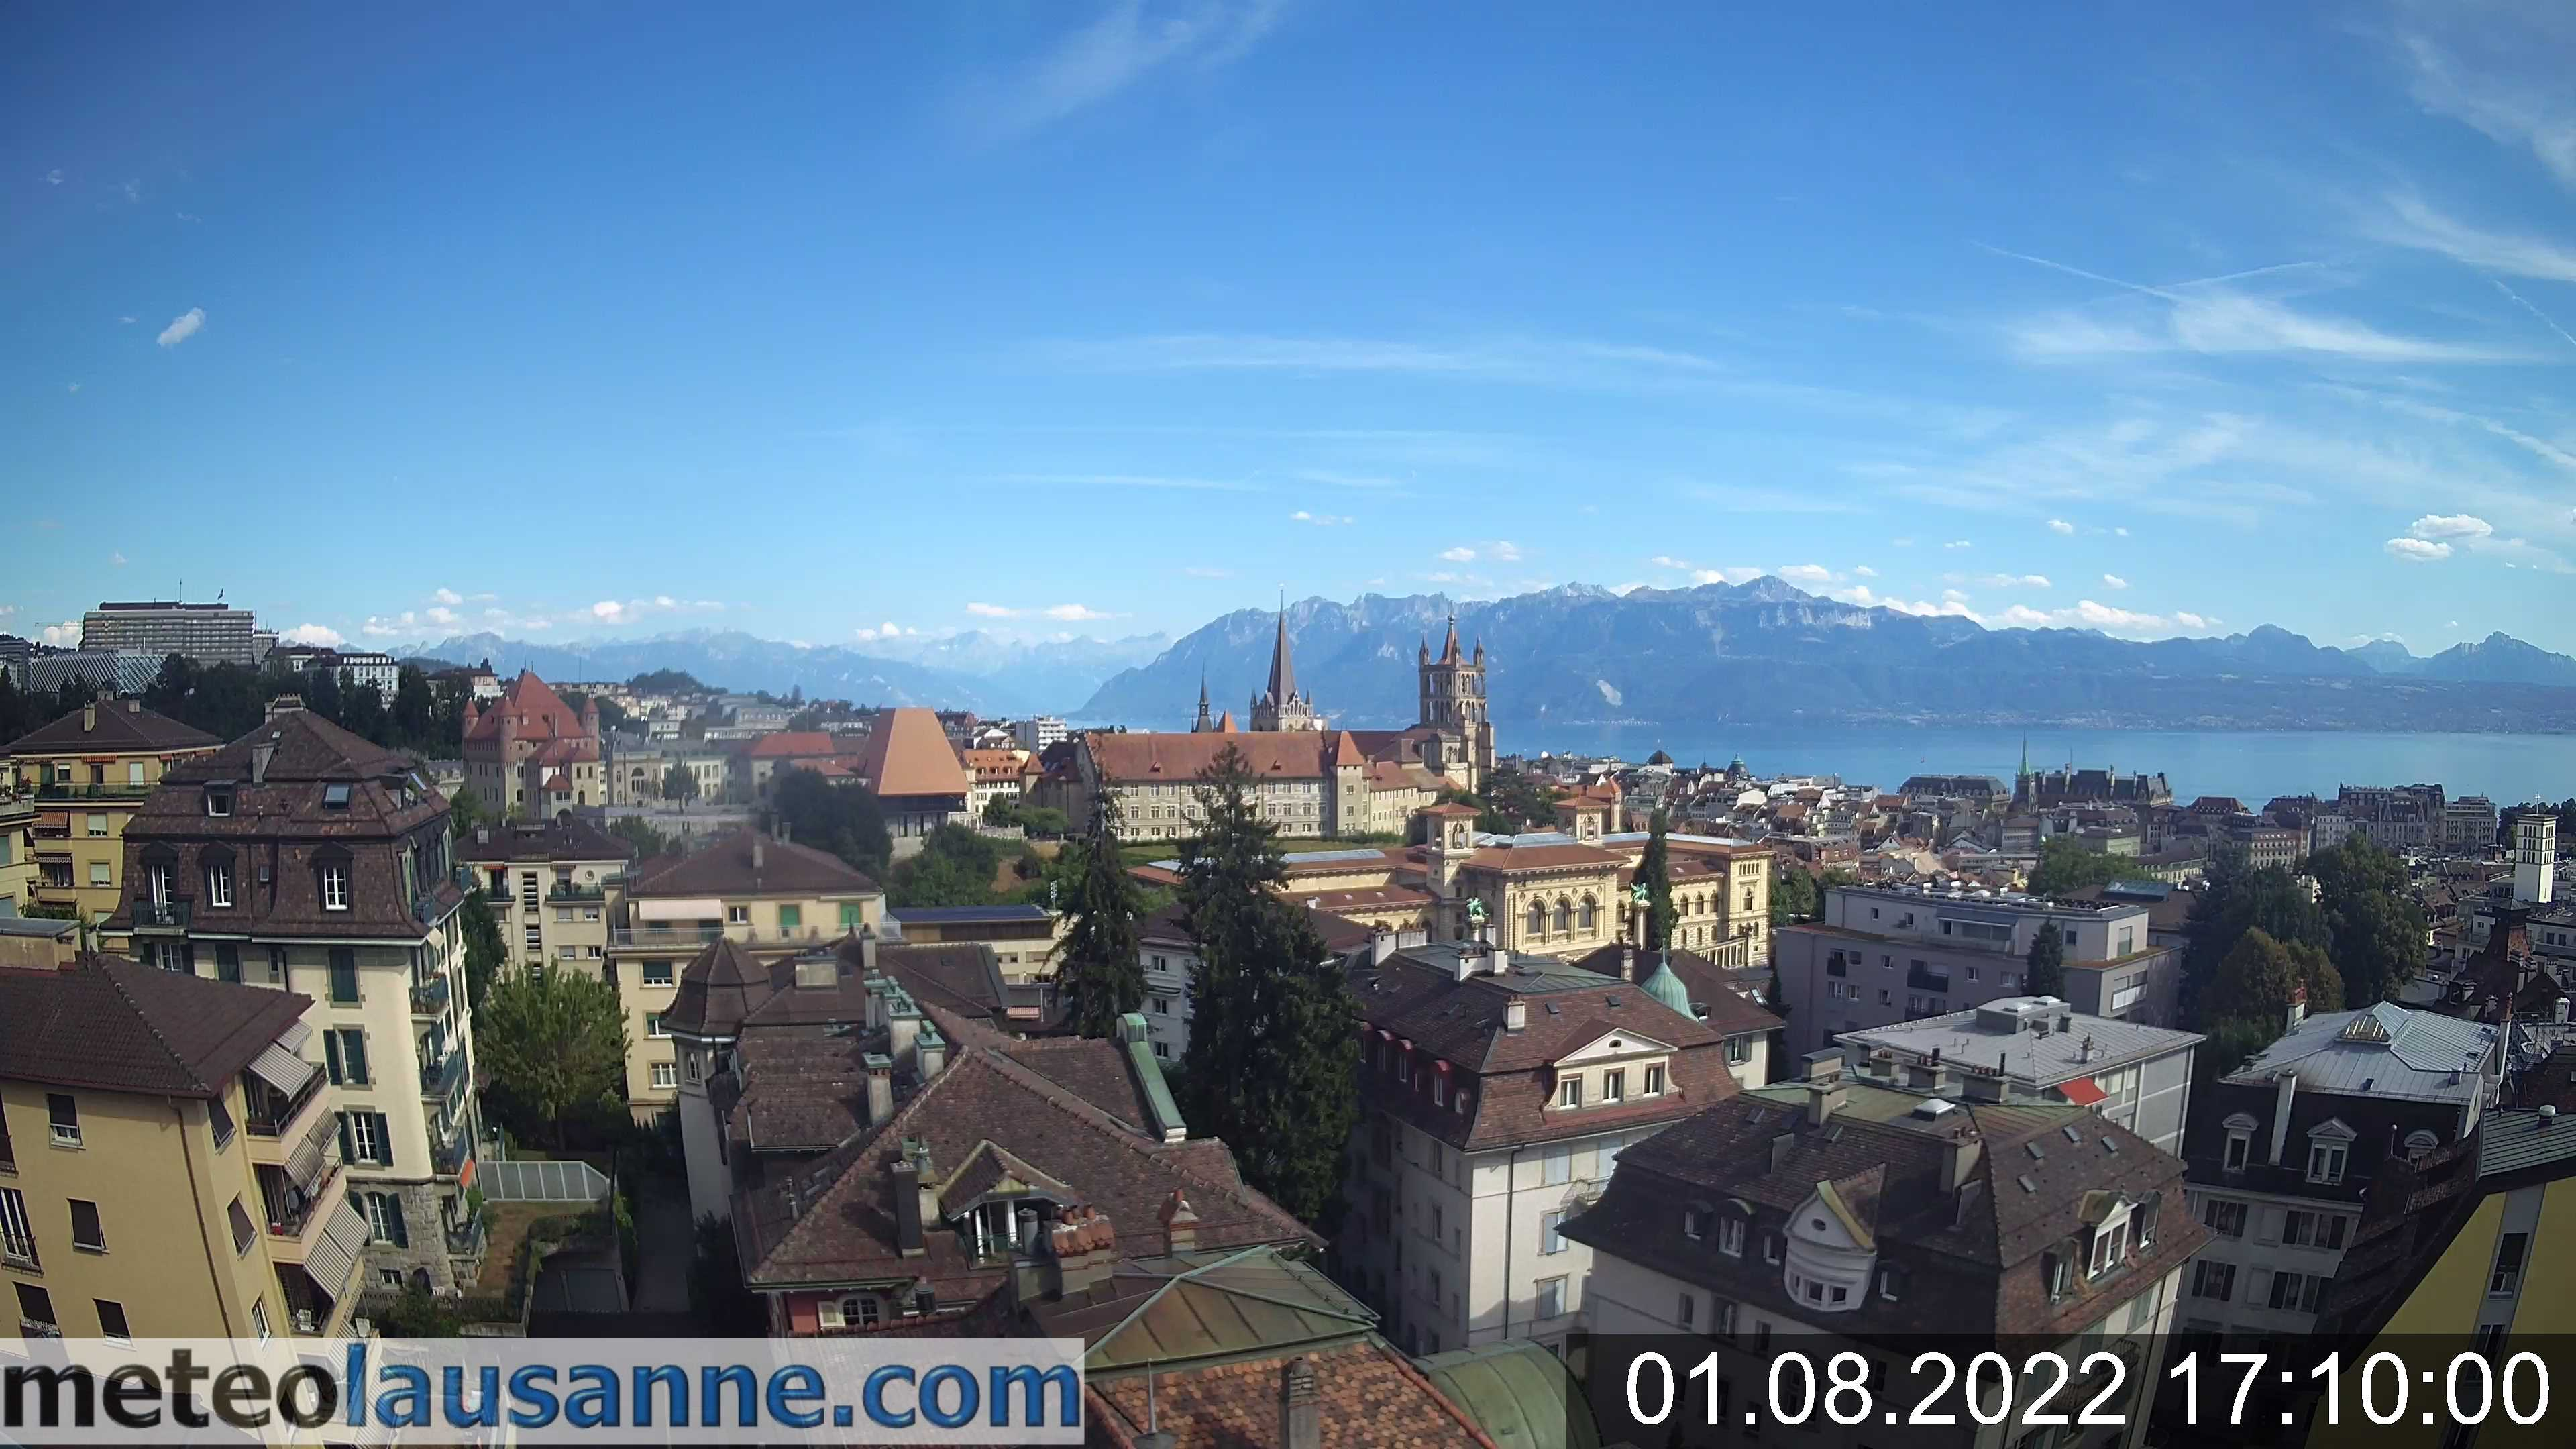 Webcam on the cathedral of Lausanne and the Palais de Rumine.